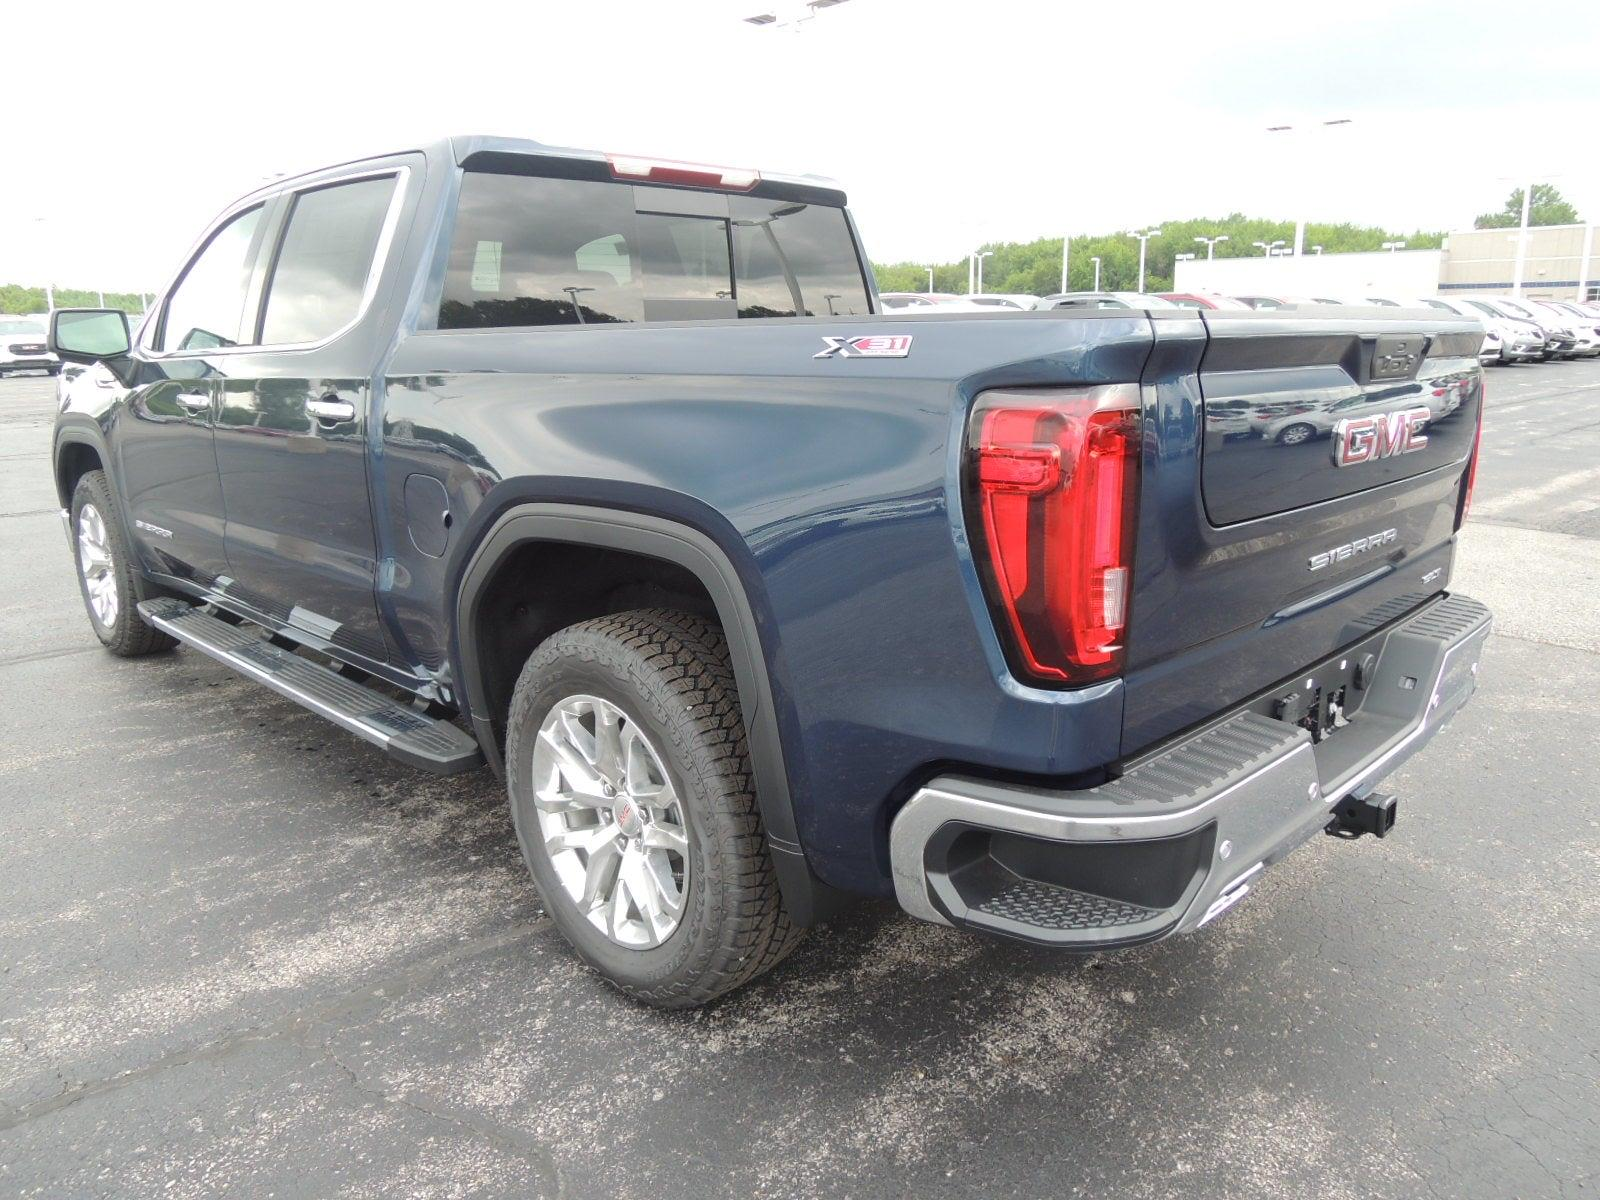 2021 GMC Sierra 1500 Crew Cab 4x4, Pickup #MT282 - photo 9